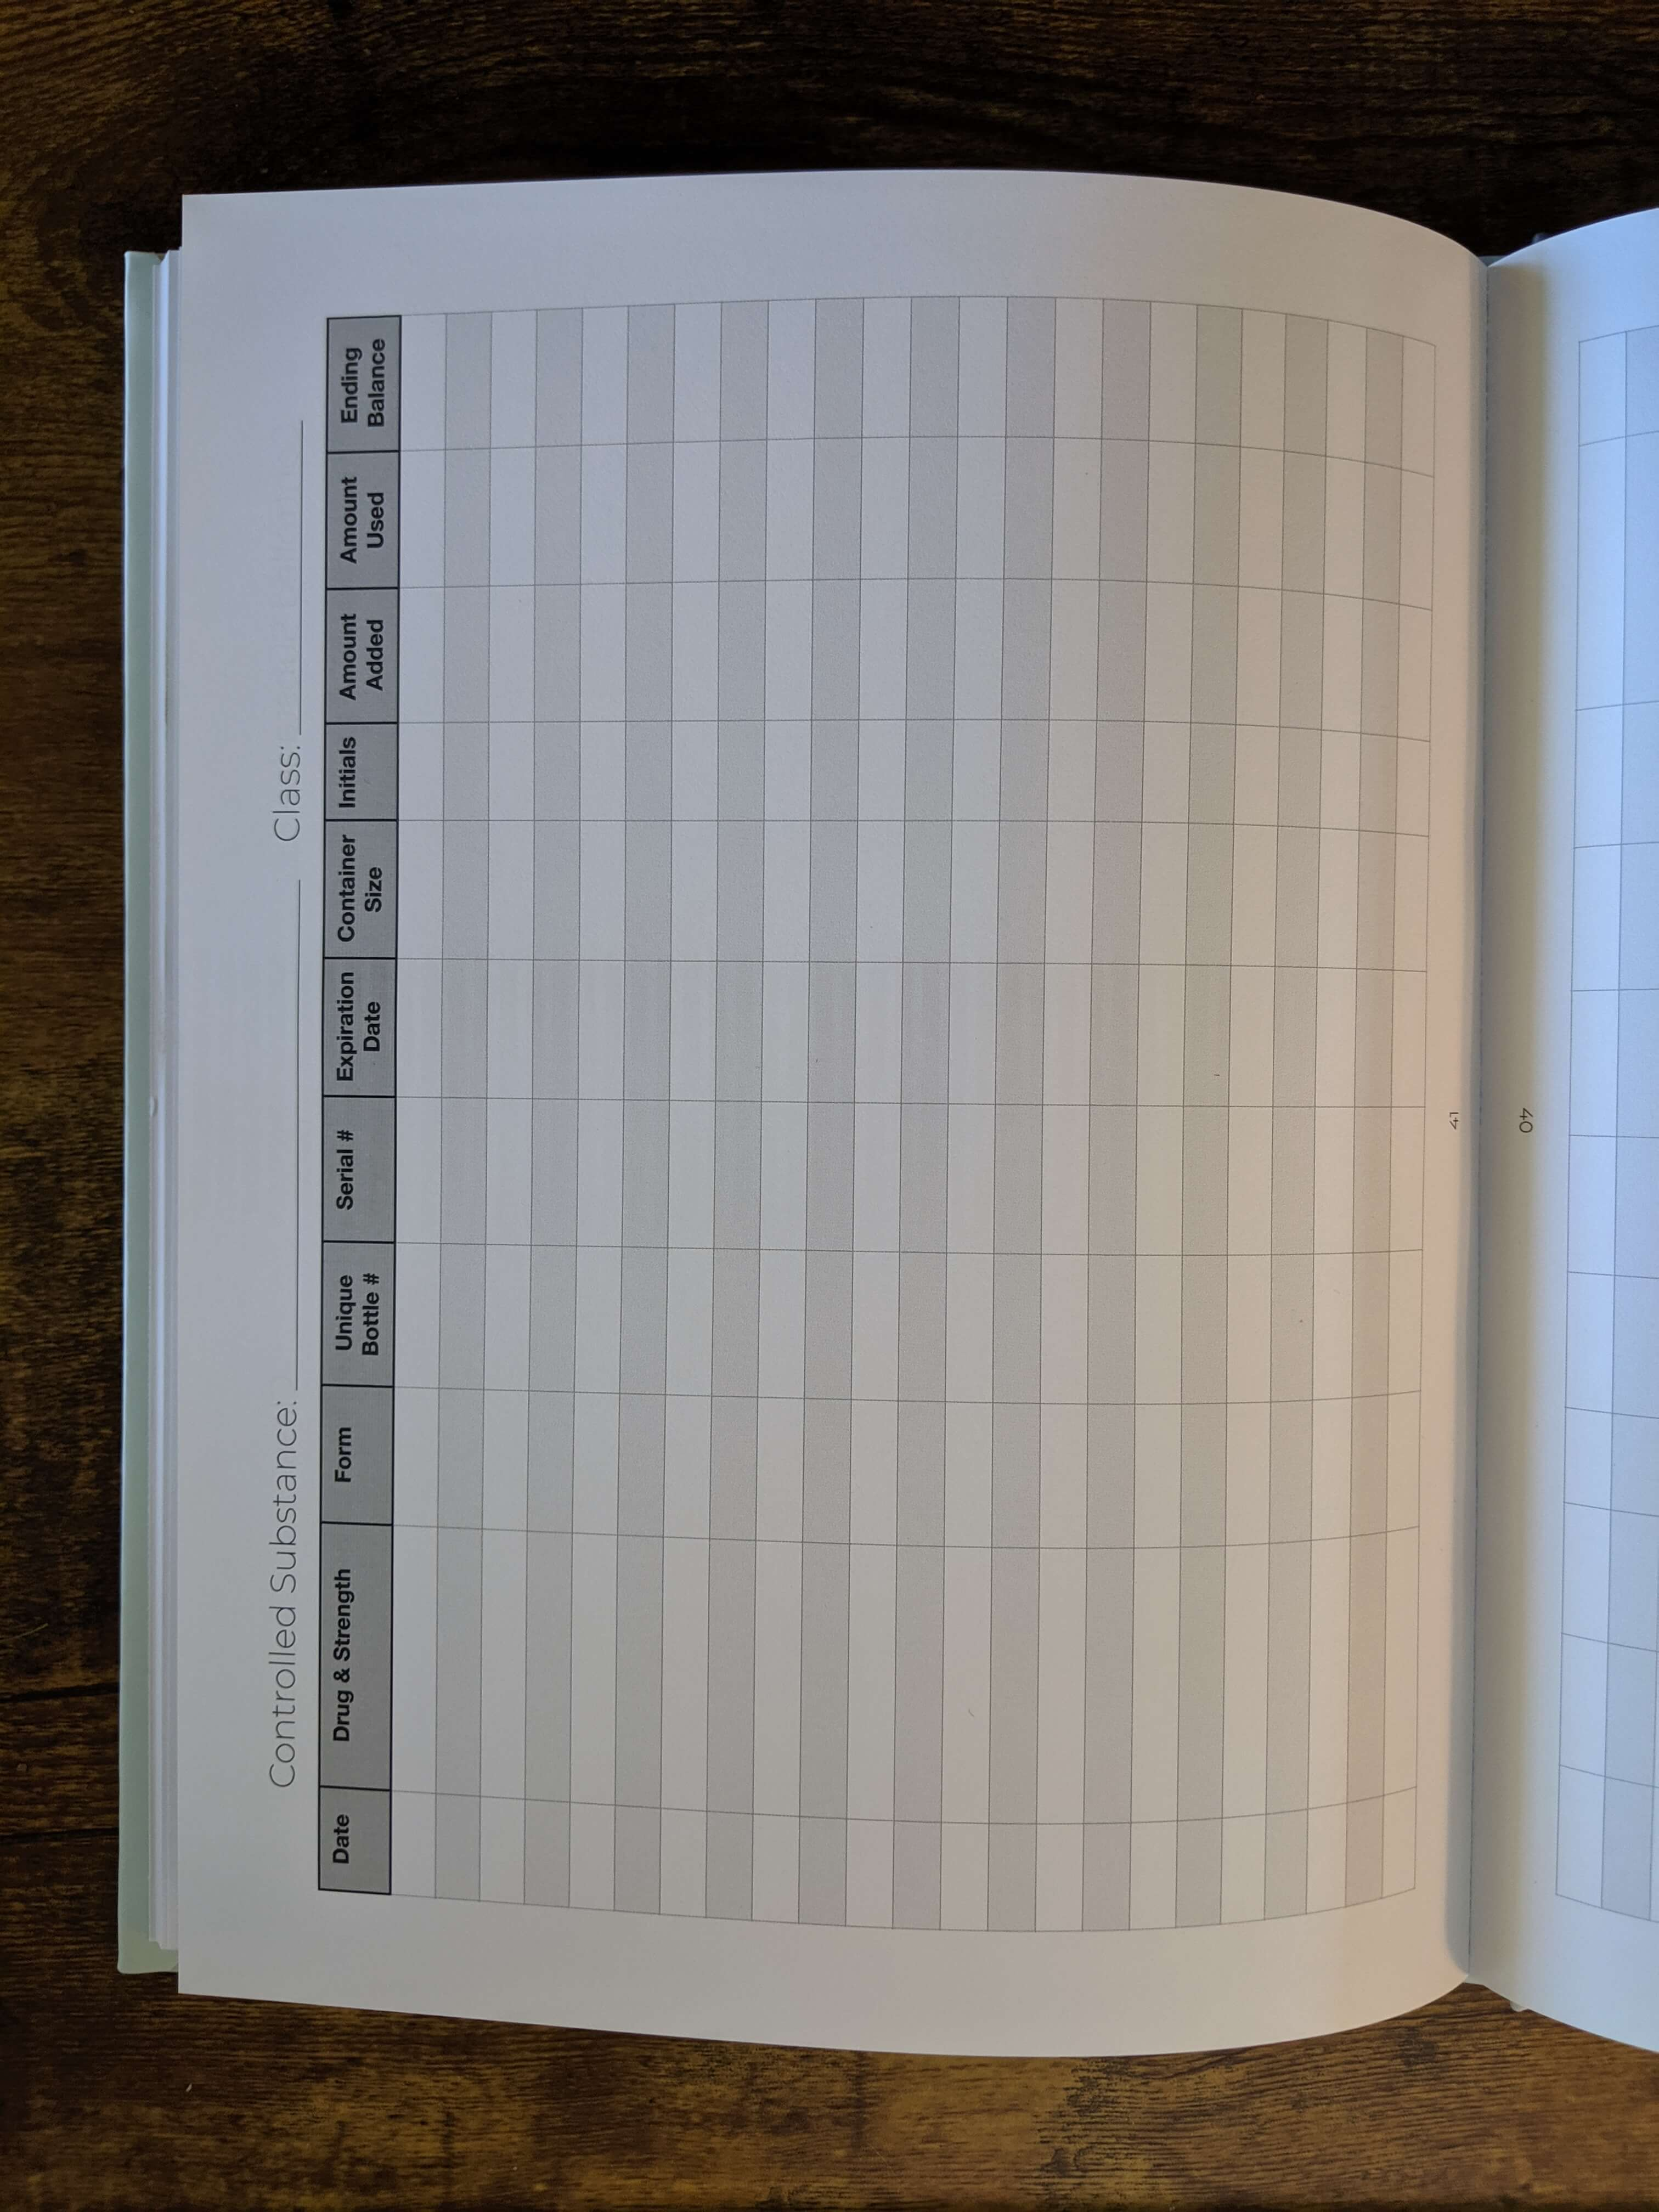 hardcover controlled substance log